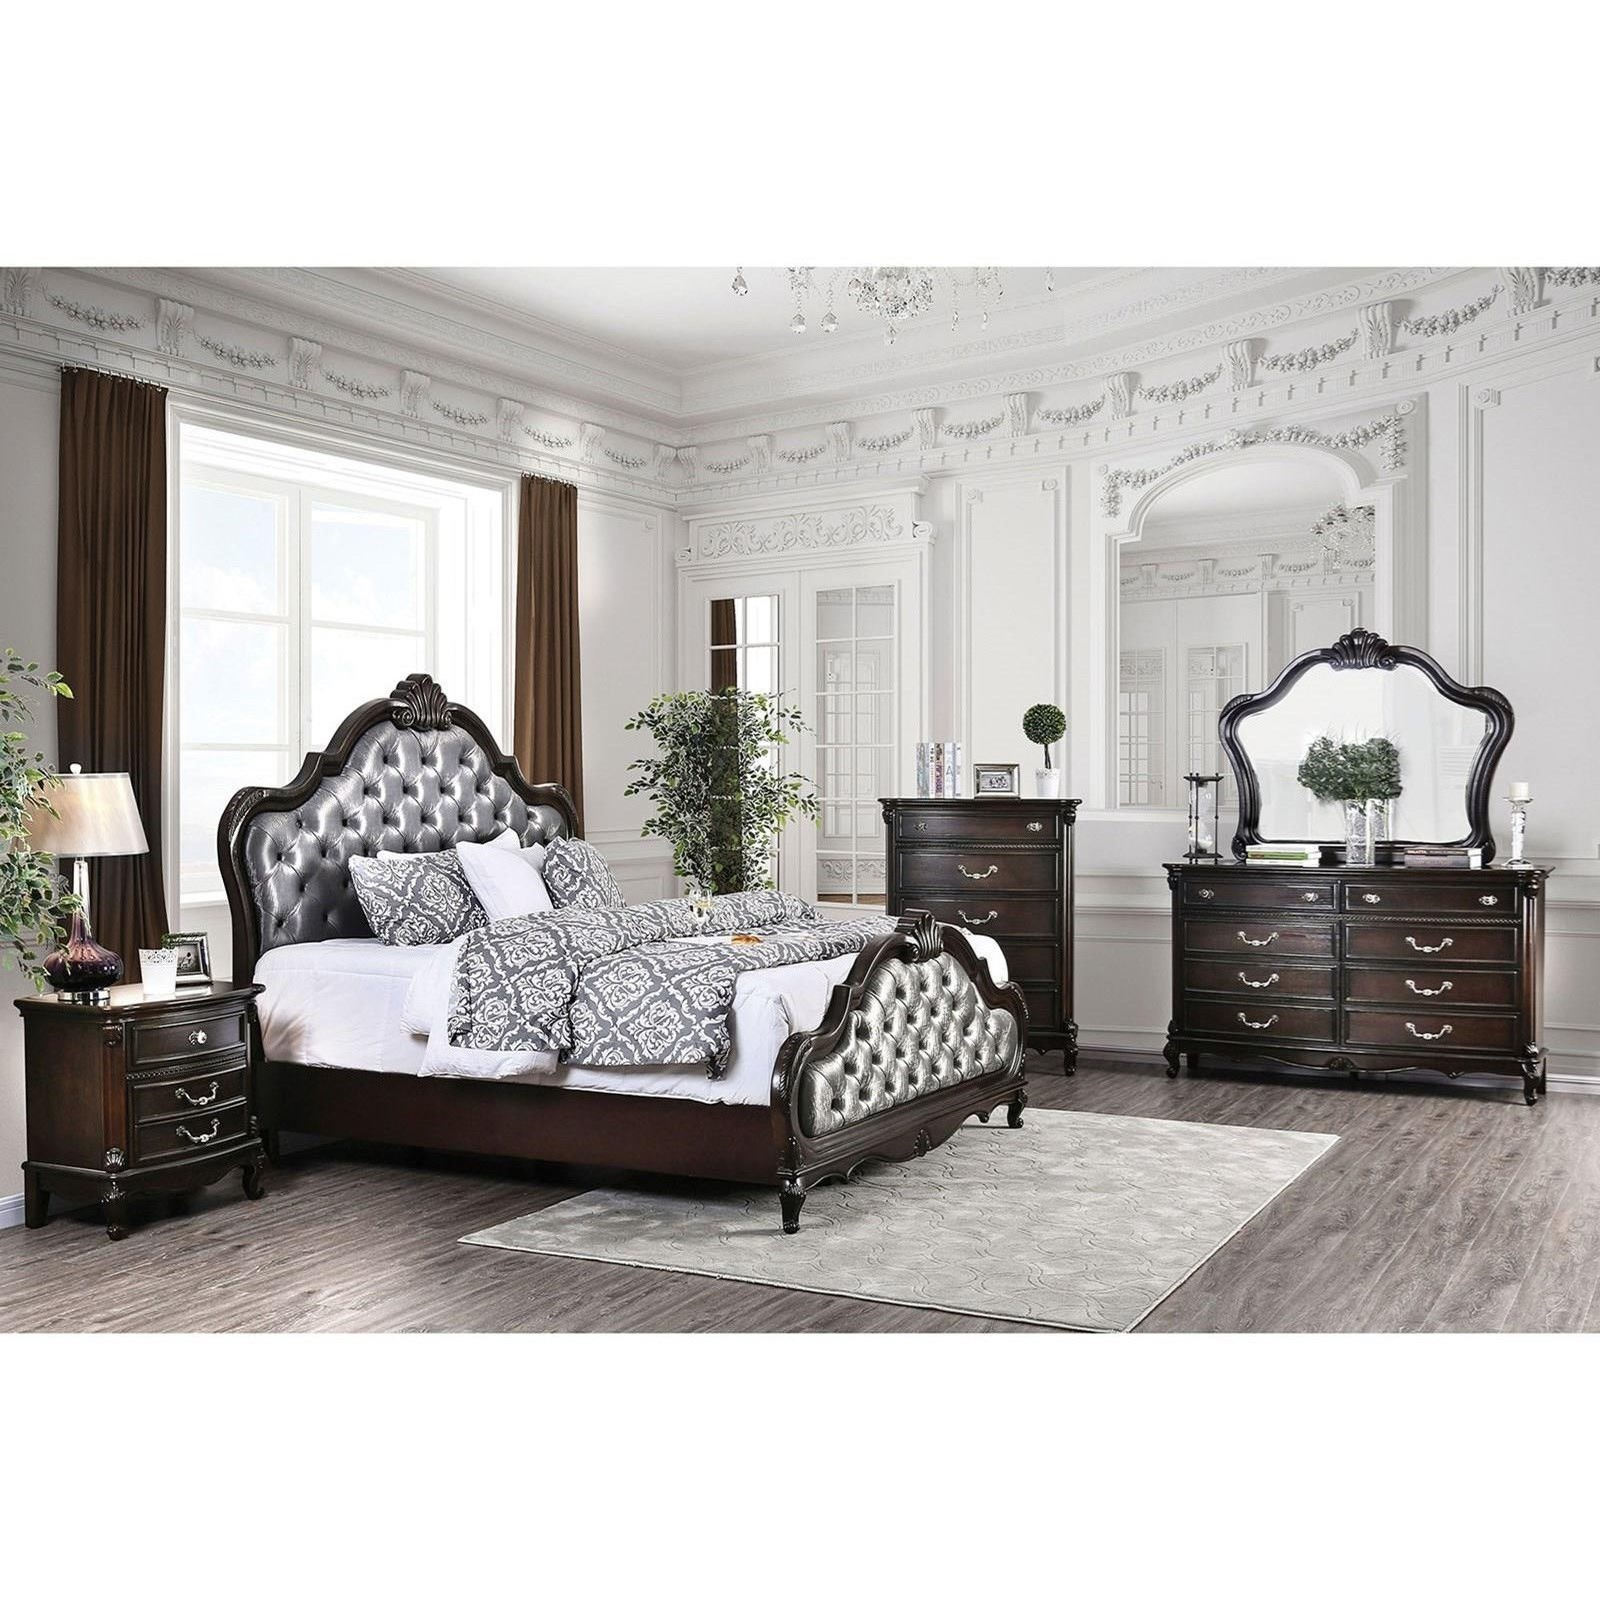 Bethesda Queen Bedroom Group at Household Furniture